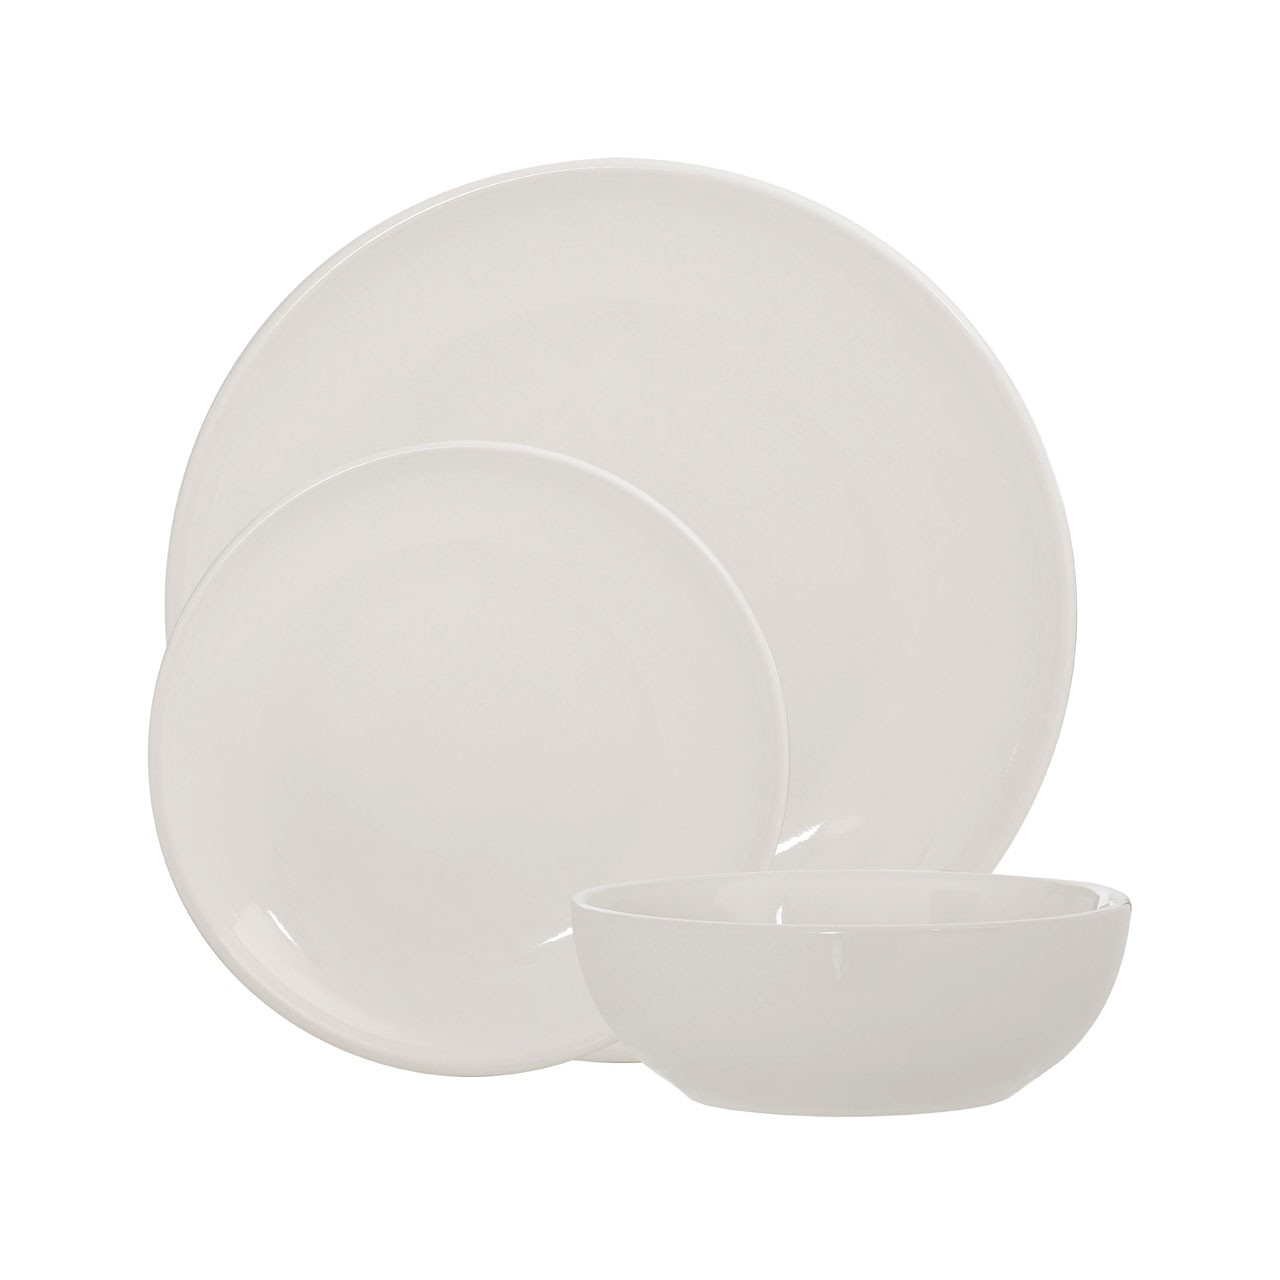 12pc Sienna Dinner Set - Ivory Stoneware